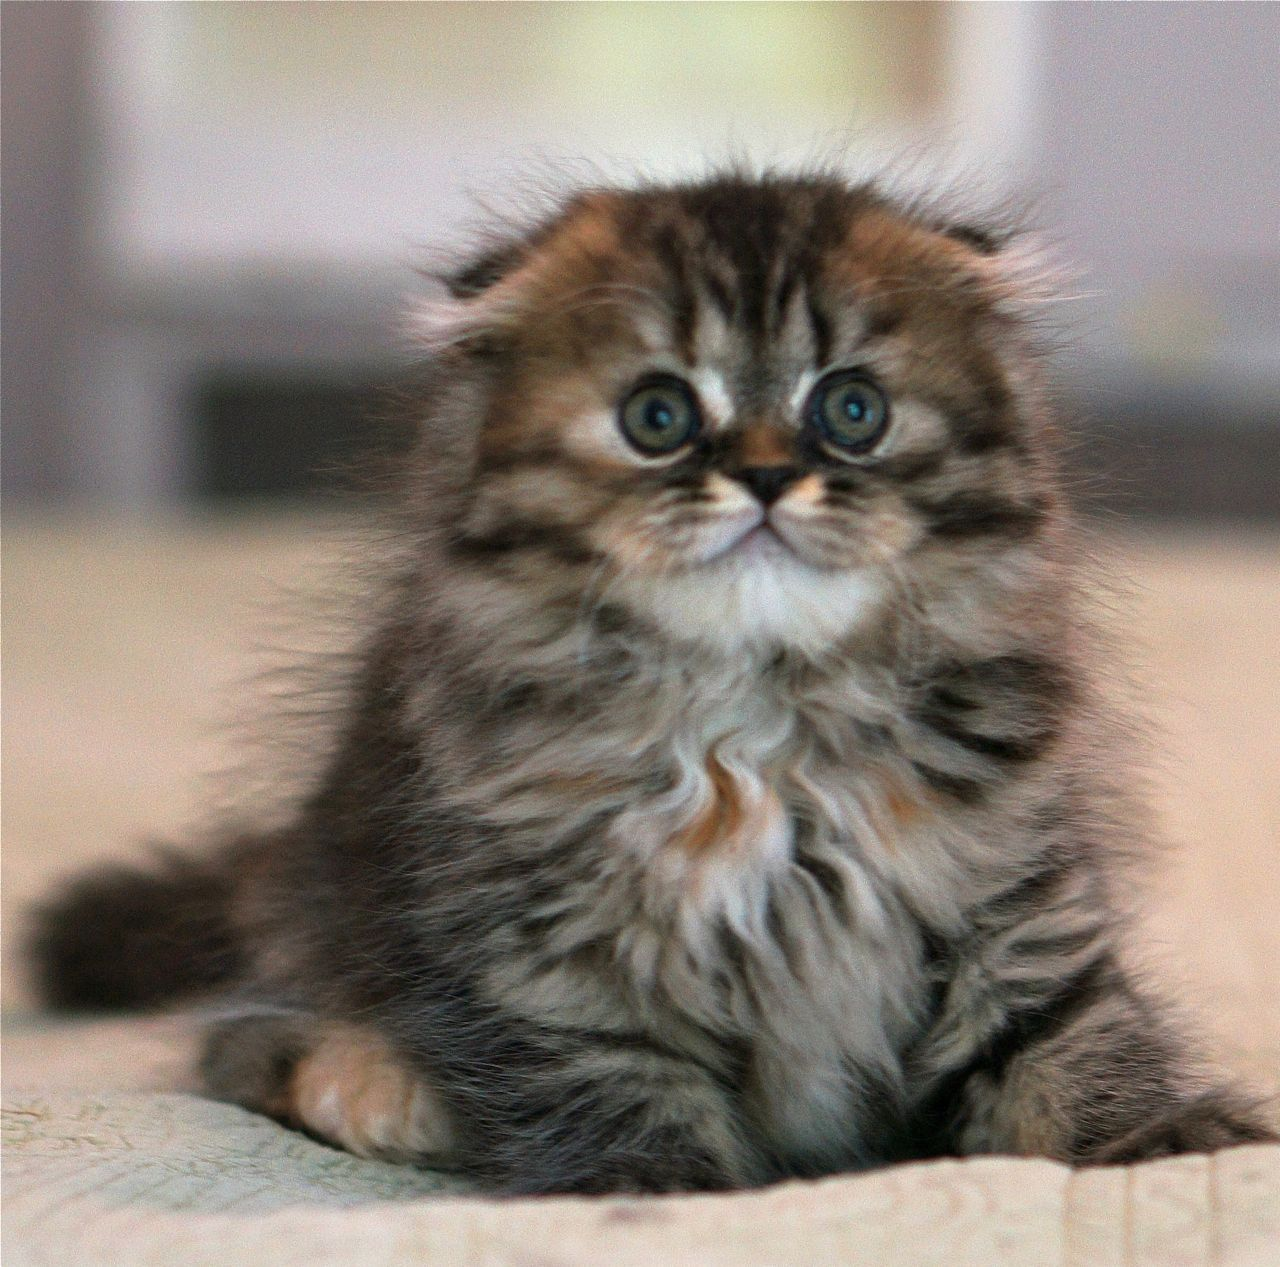 Rare Scottish Fold Munchkins Scottish Fold Kittens Price